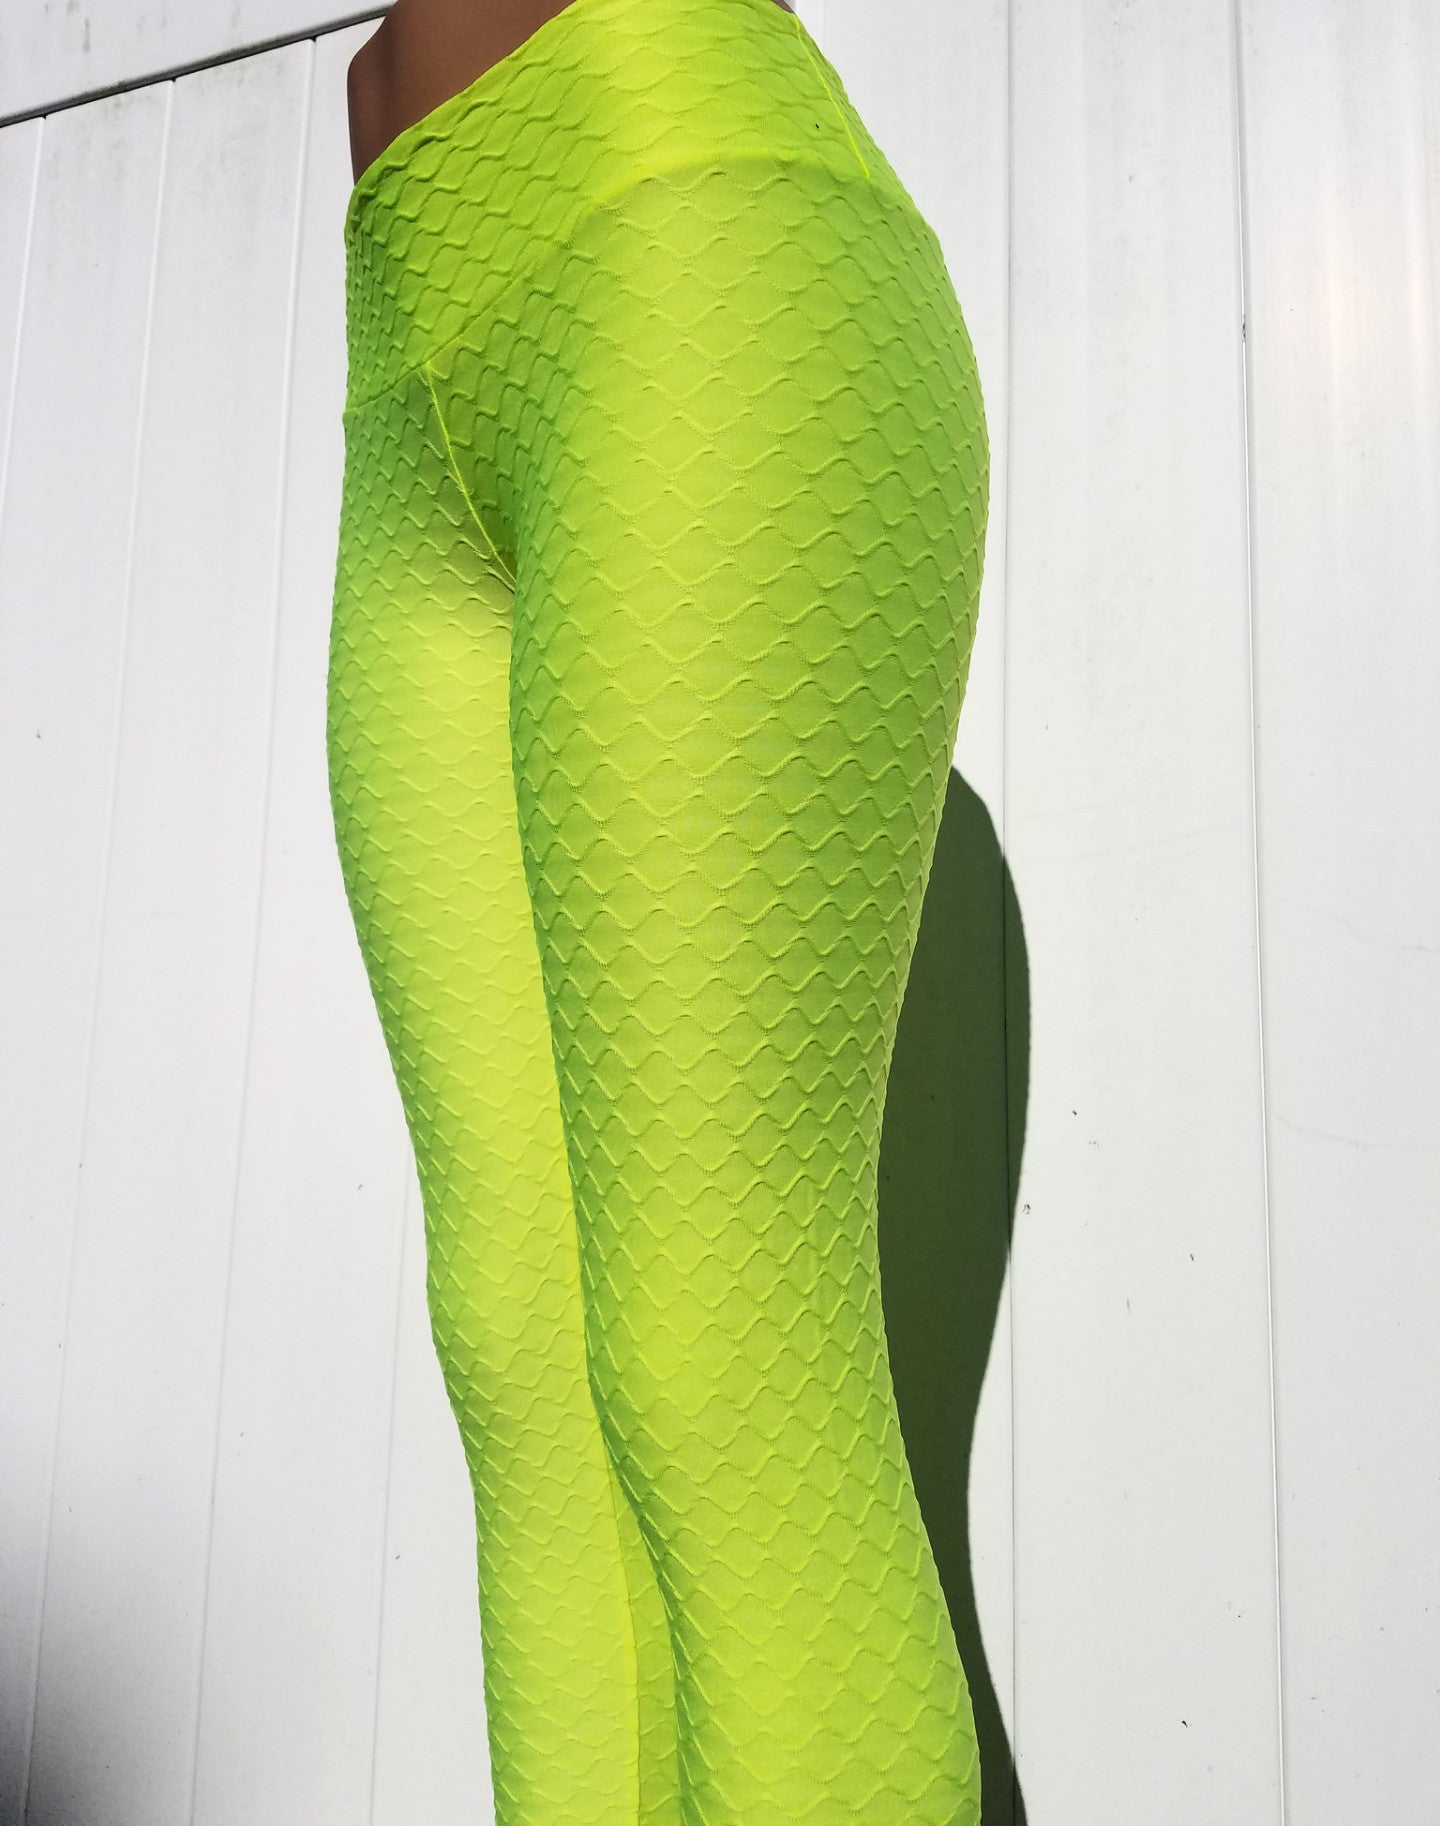 WAVE - NEON YELLOW-NYLeggings.com